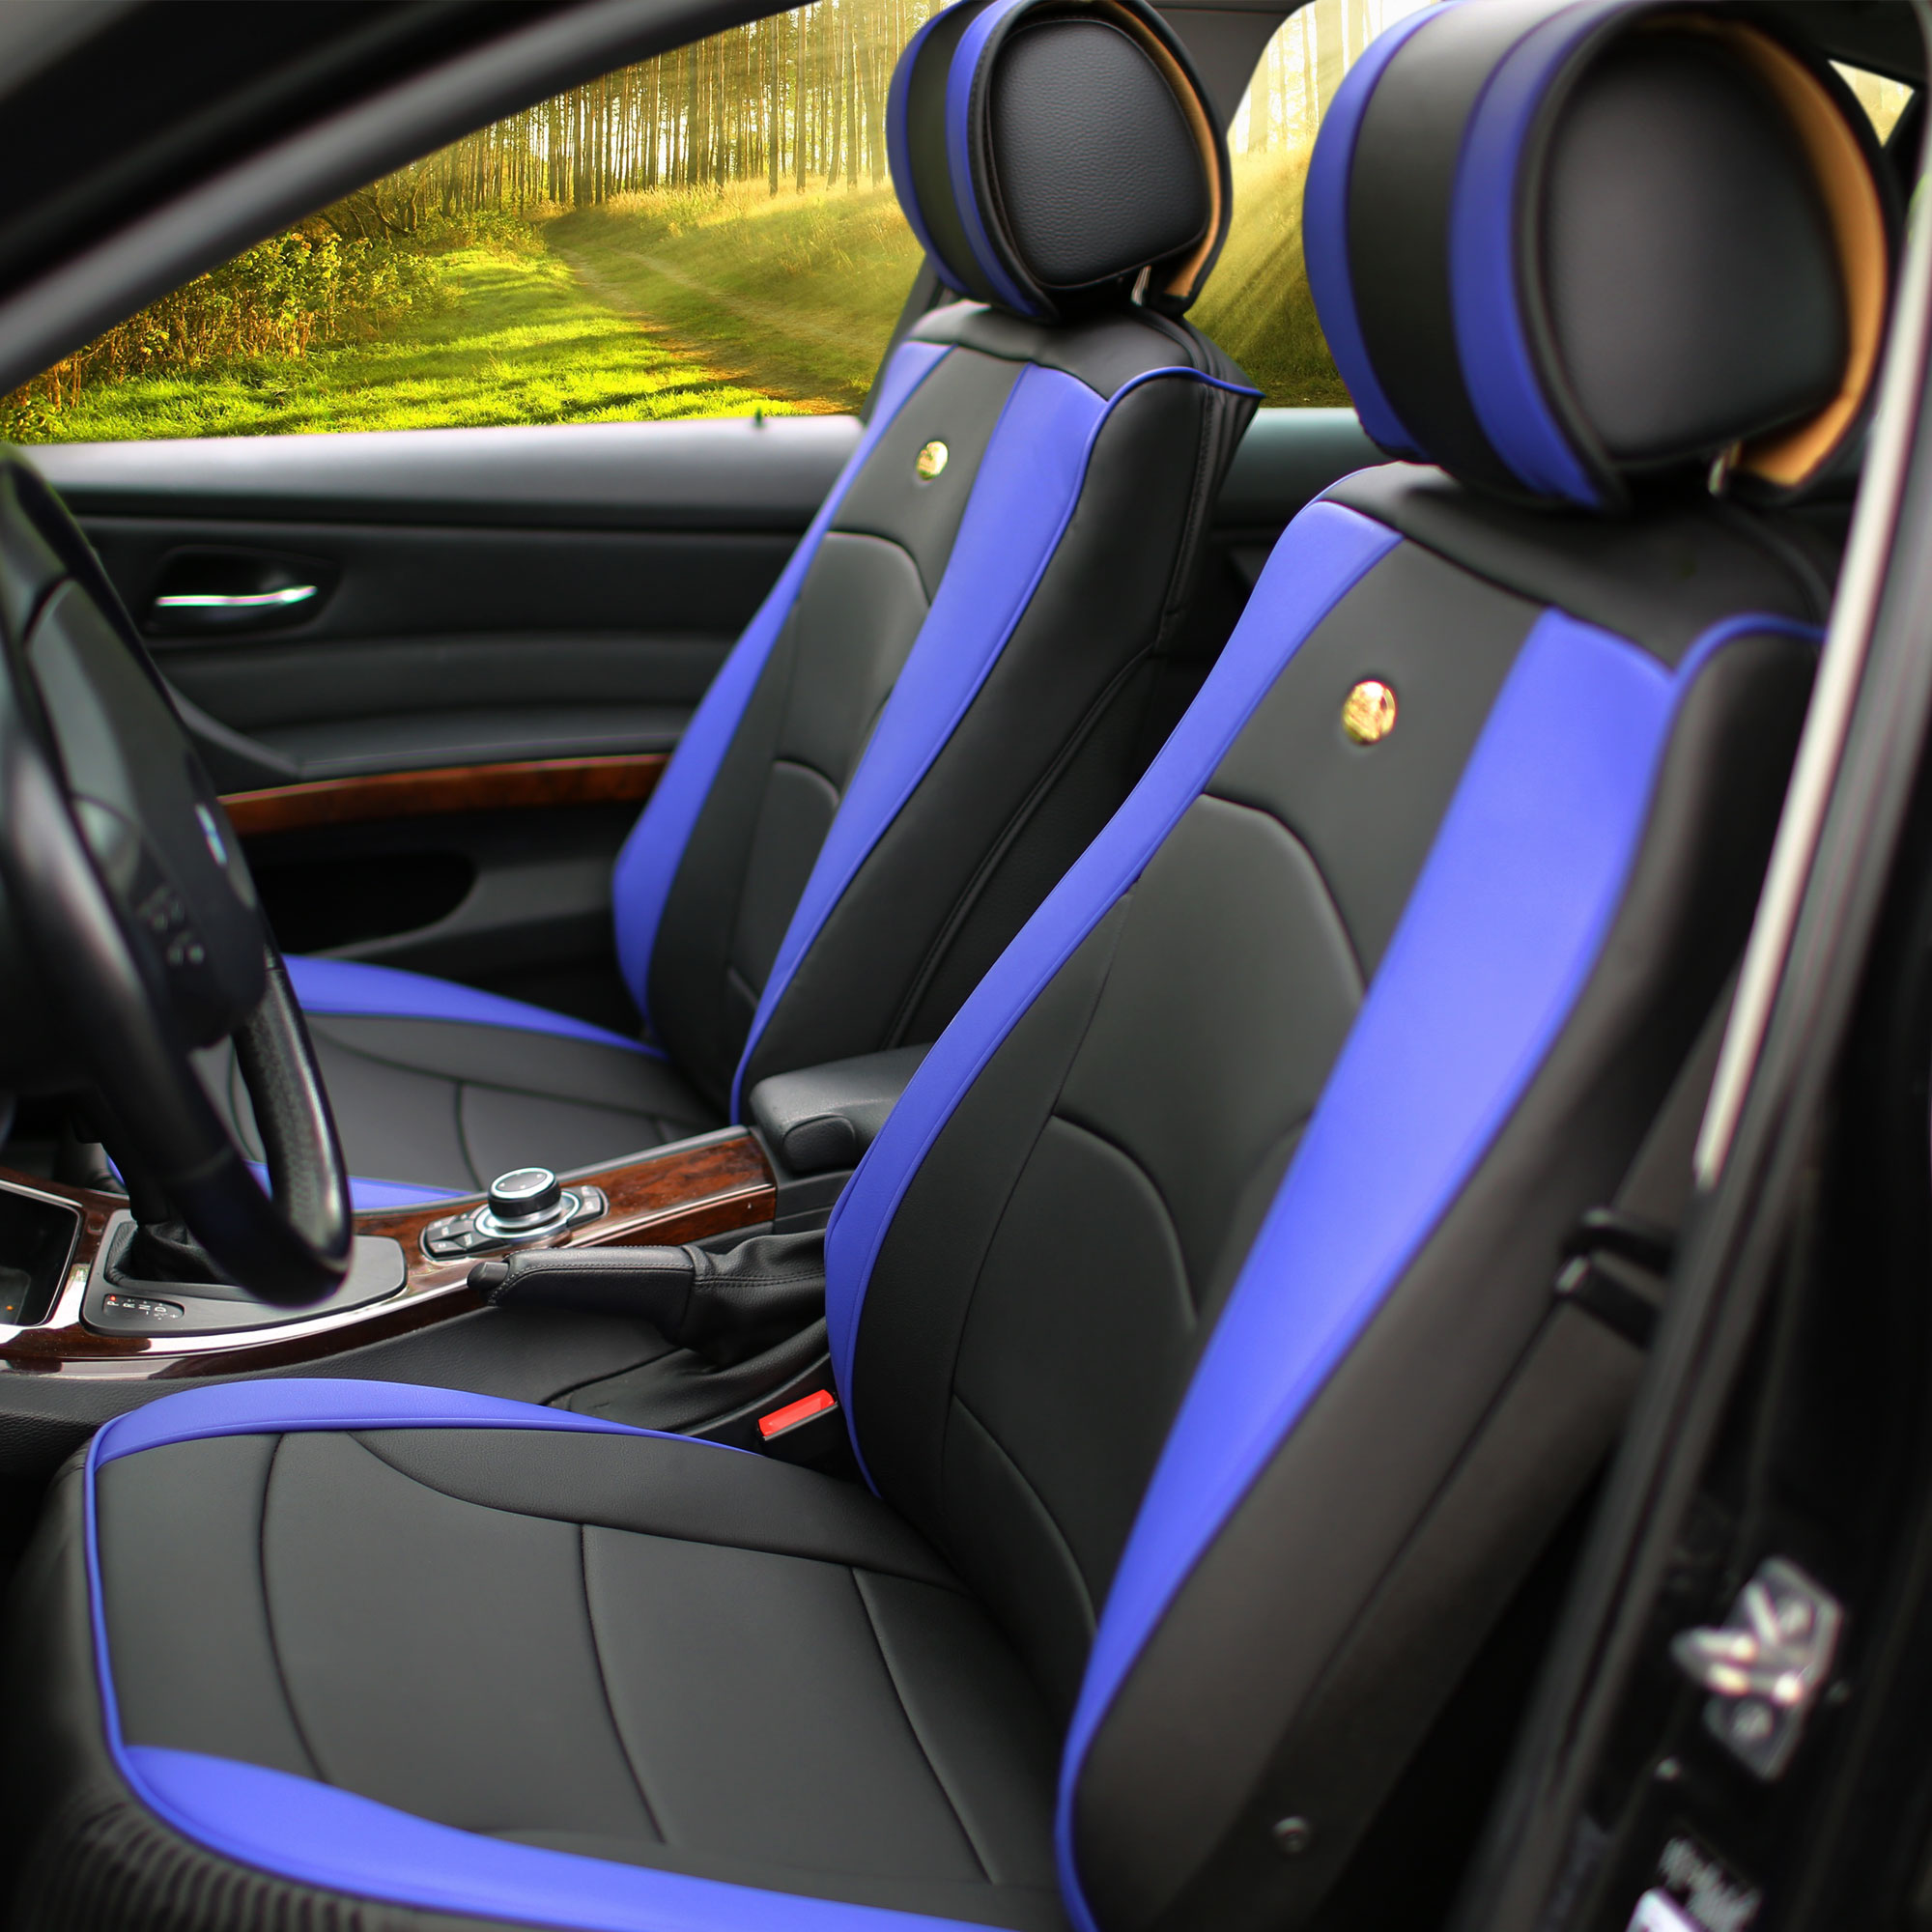 Luxury-Leather-Seat-Cushion-Covers-Front-Bucket-Pair-11-Color-Options thumbnail 19